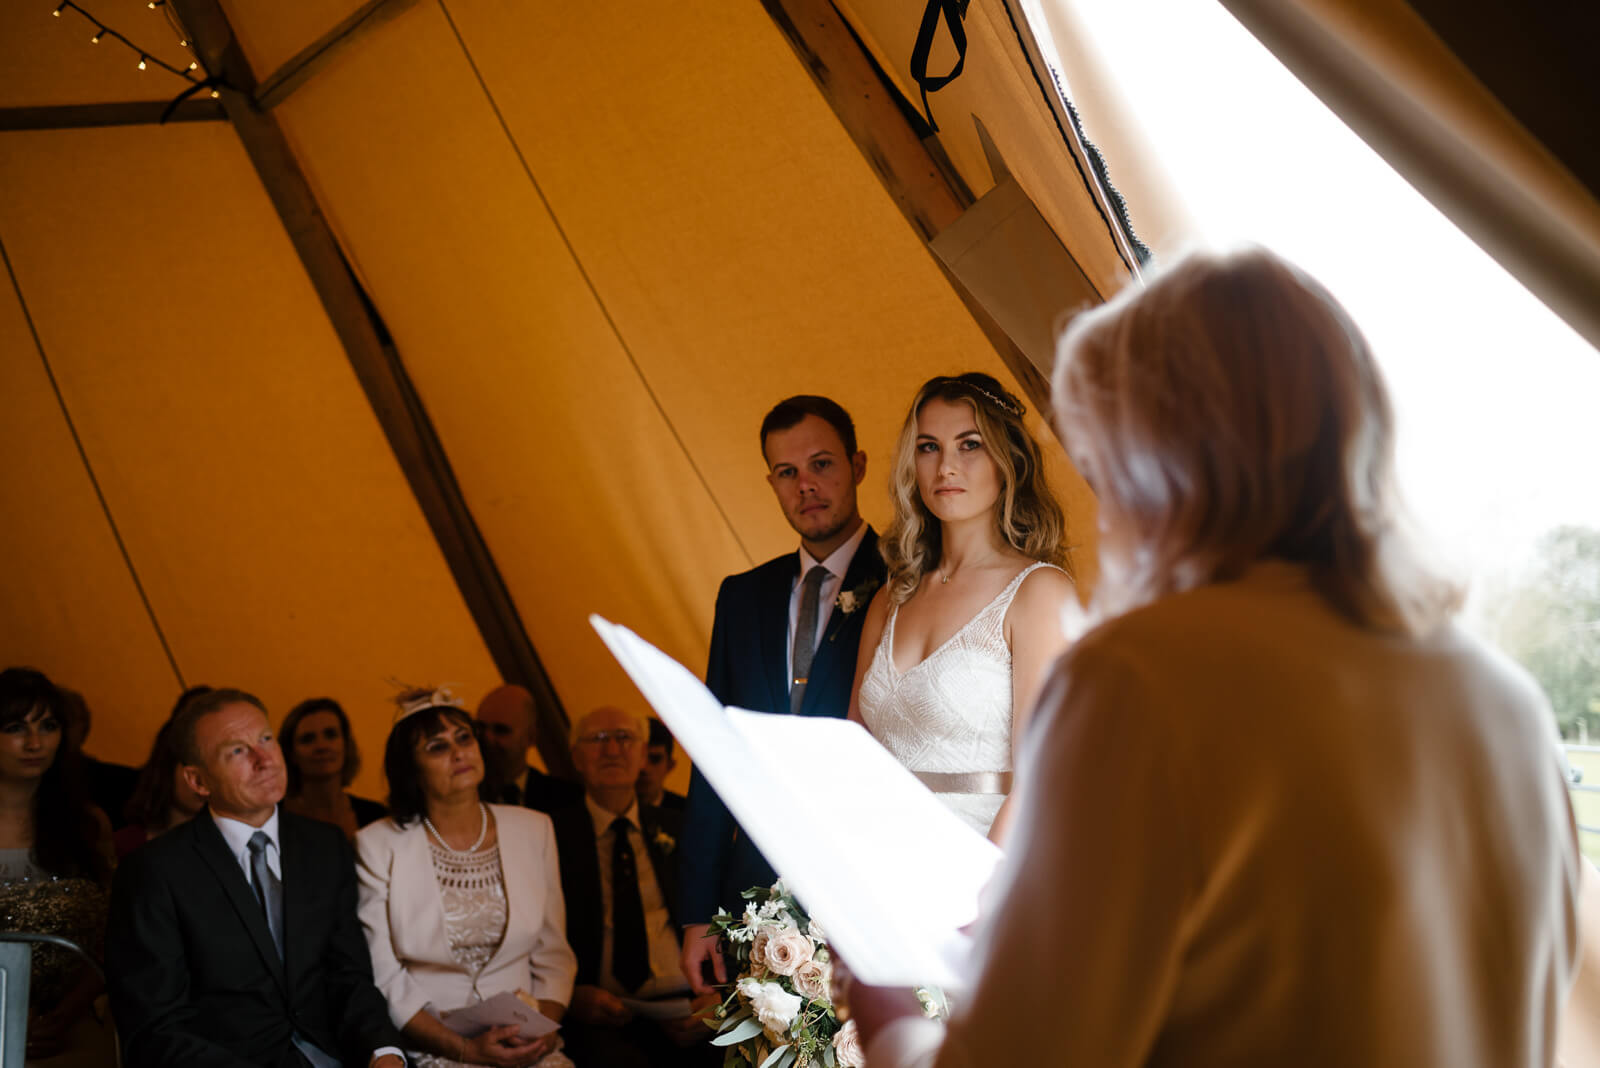 bride and groom look on to registrar during their tipi wedding ceremony at Glove Factory Studios in Holt